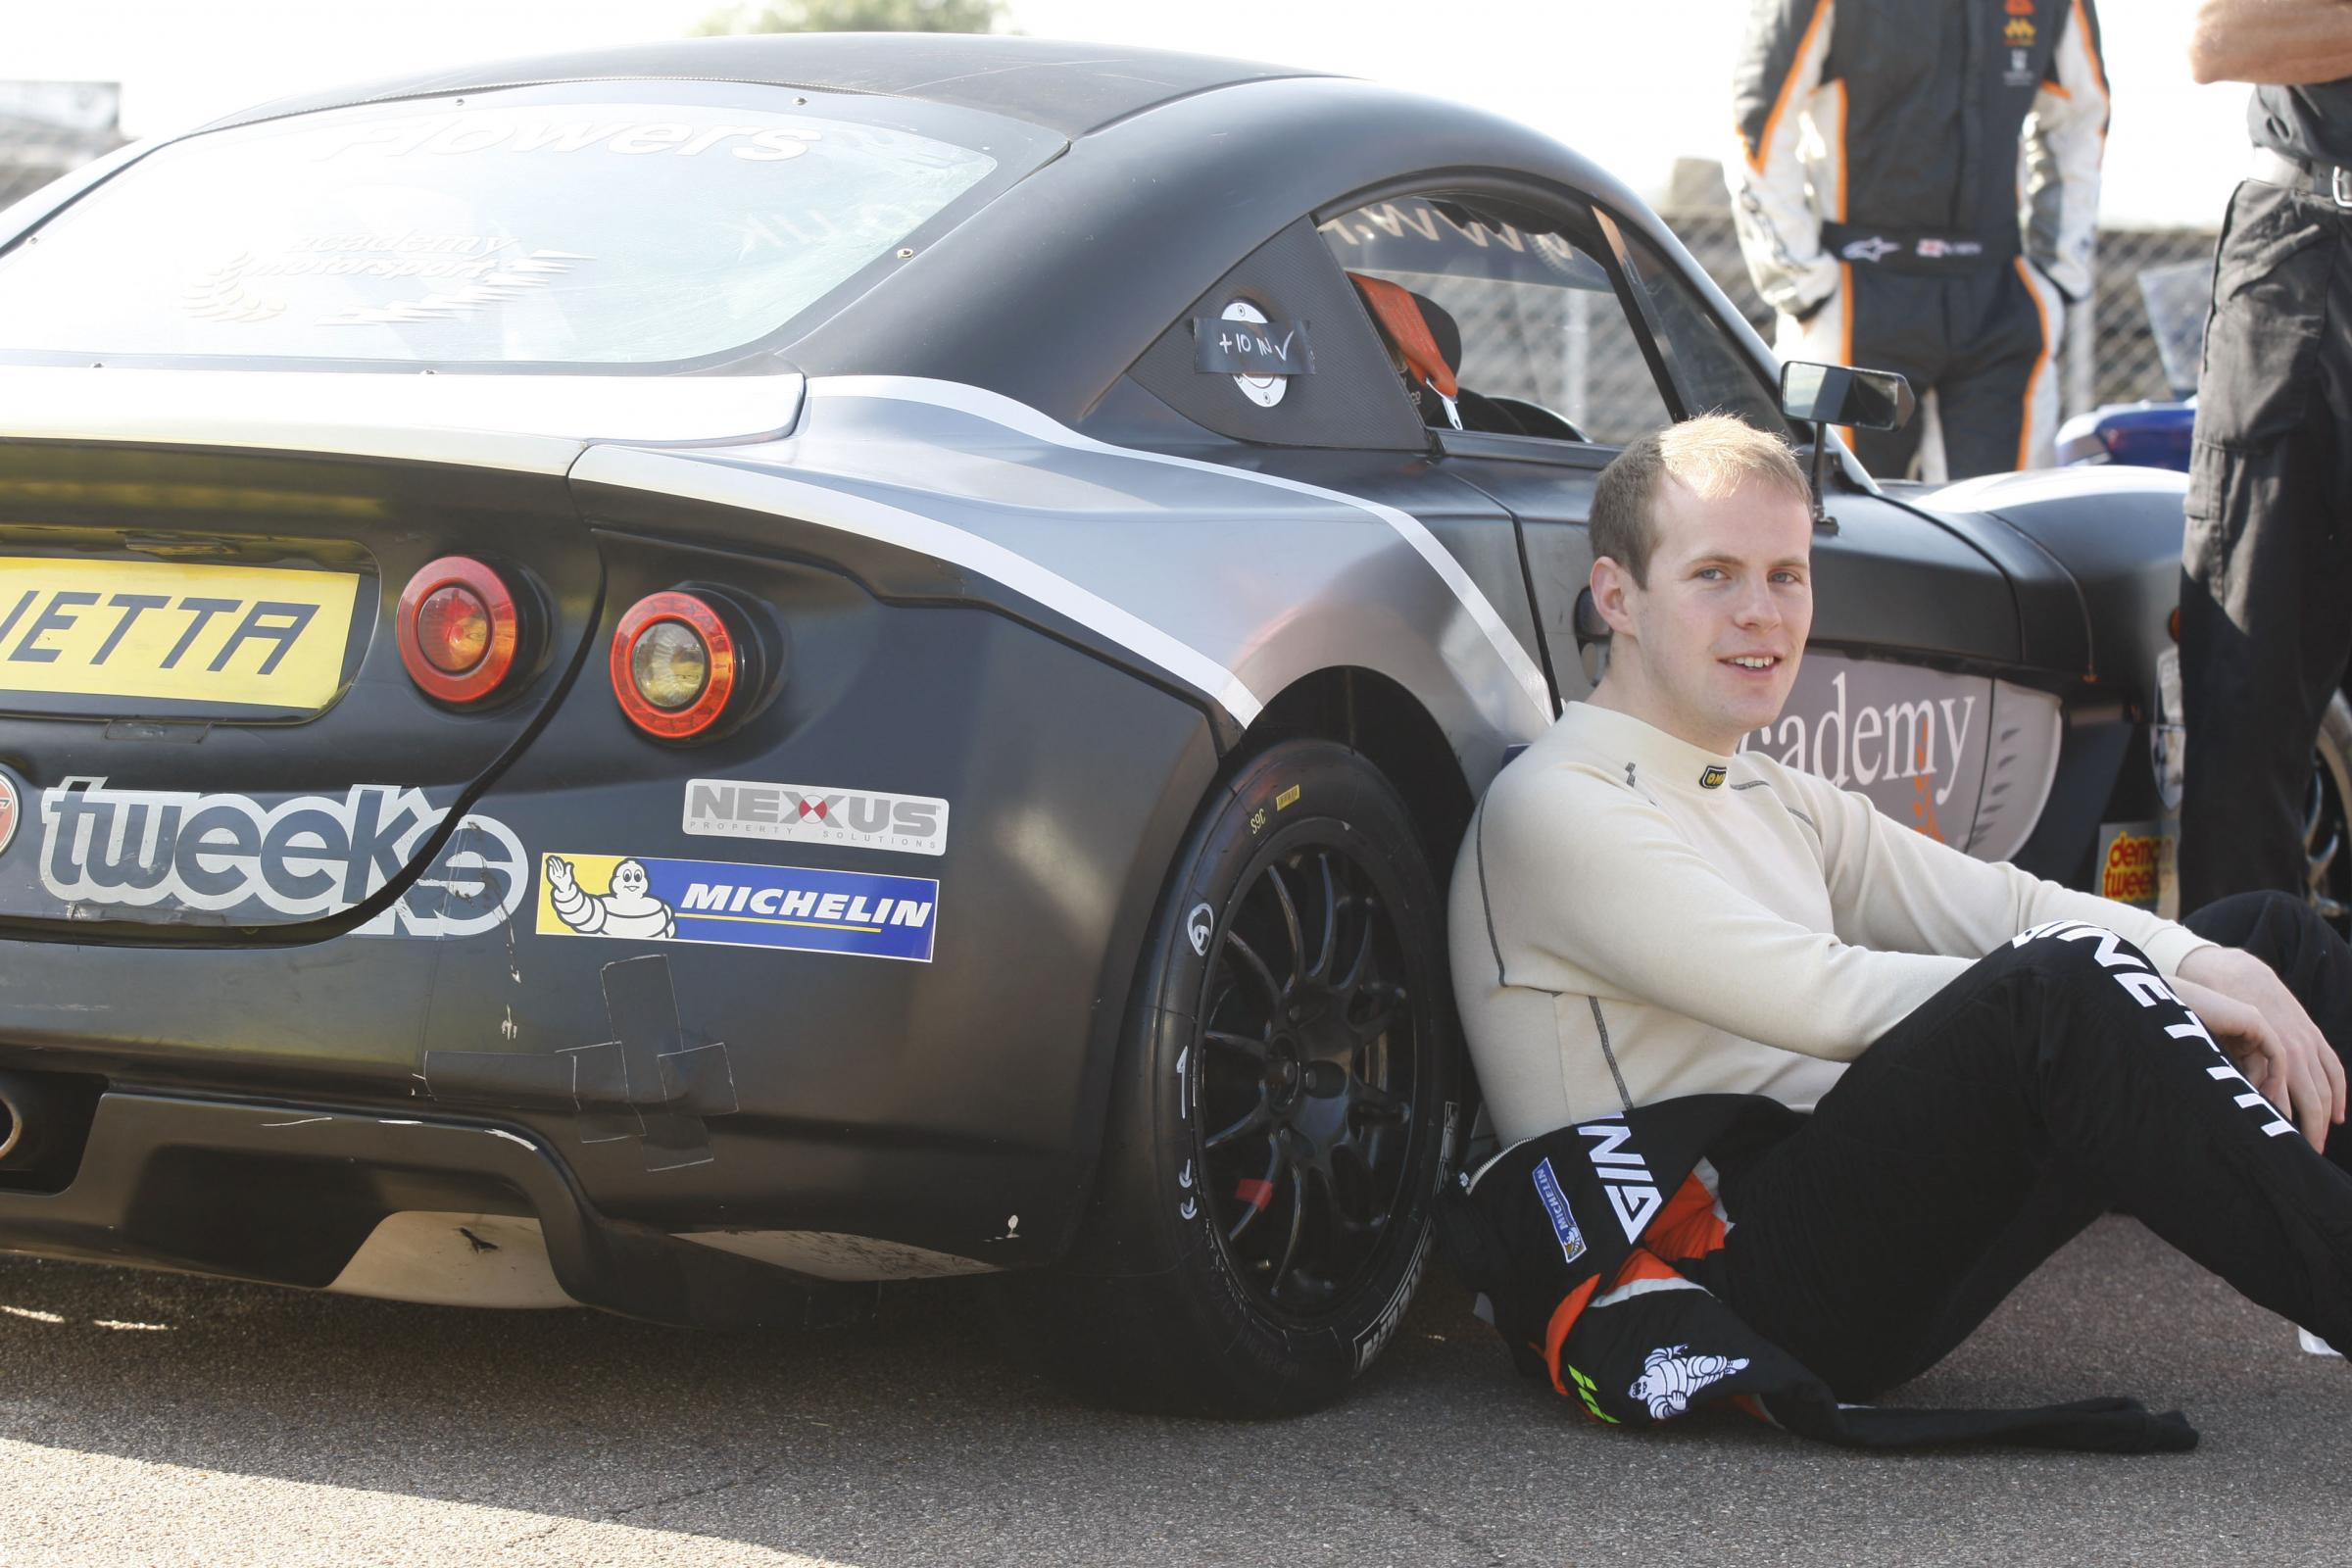 Return to action: After a year out, Matt Flowers is back behind the wheel for the Protyre Motorsport Ginetta GT5 Challenge